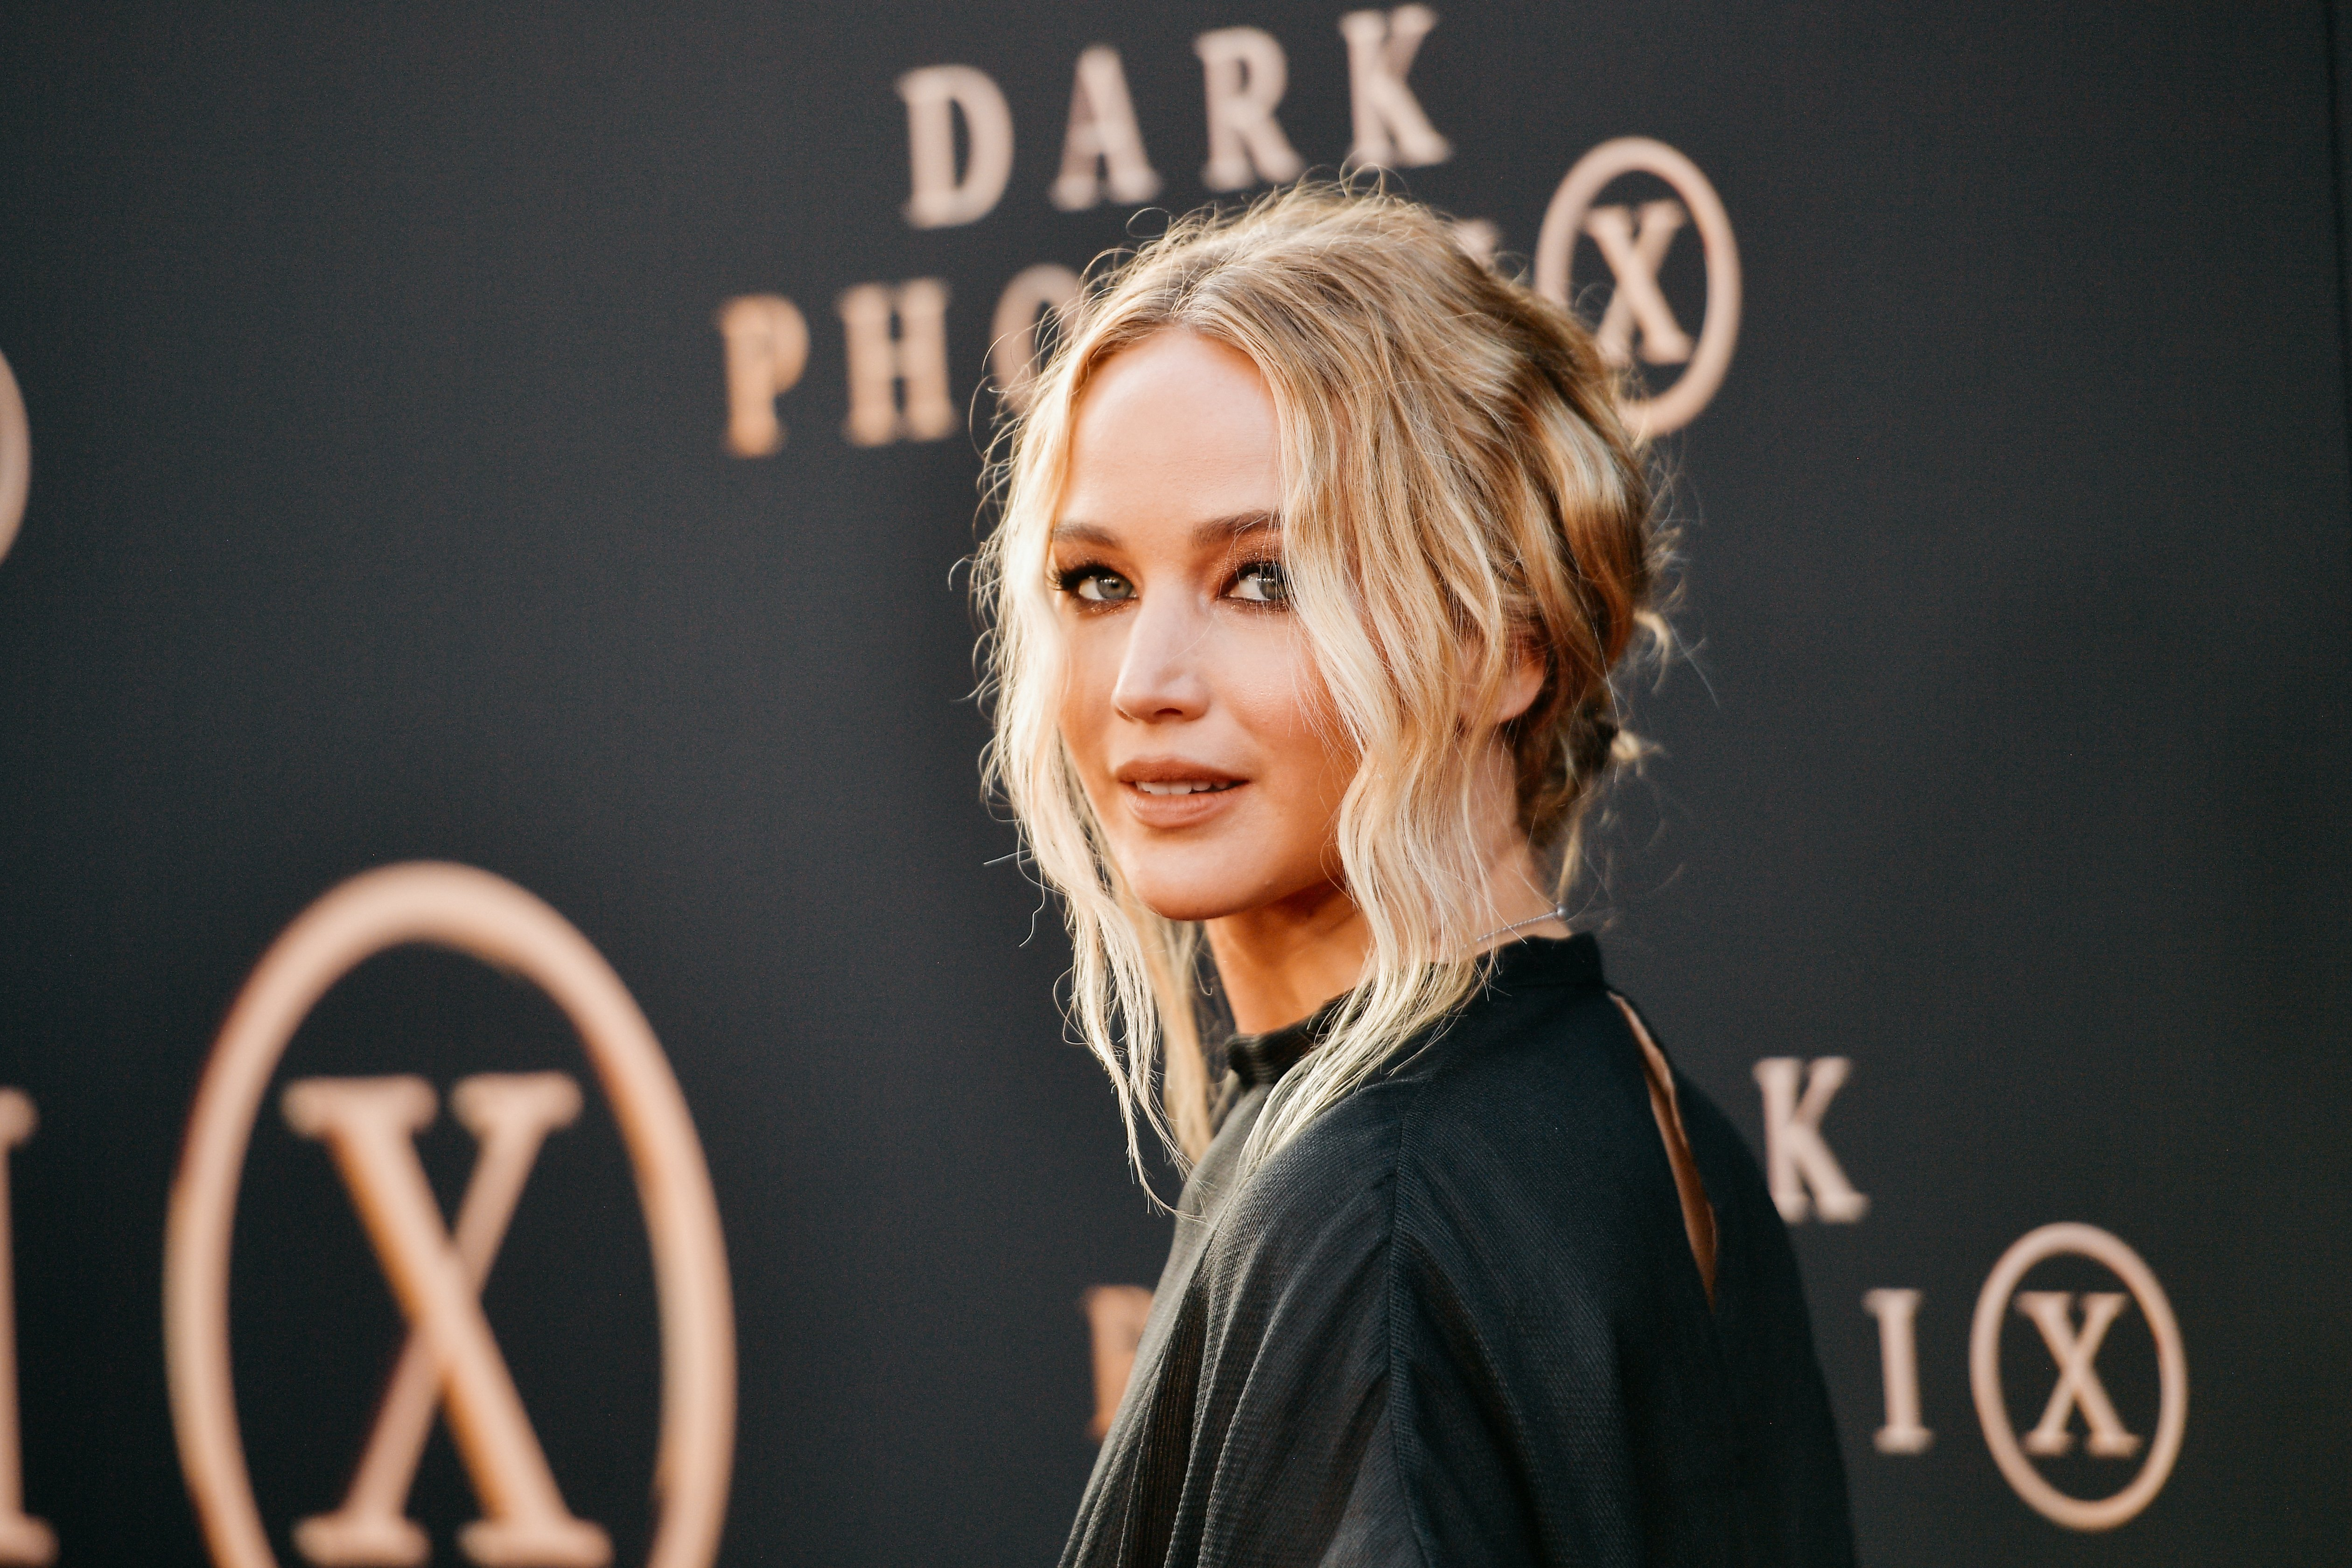 """Jennifer Lawrence attends the premiere of """"Dark Phoenix"""" in Hollywood, California on June 4, 2019 